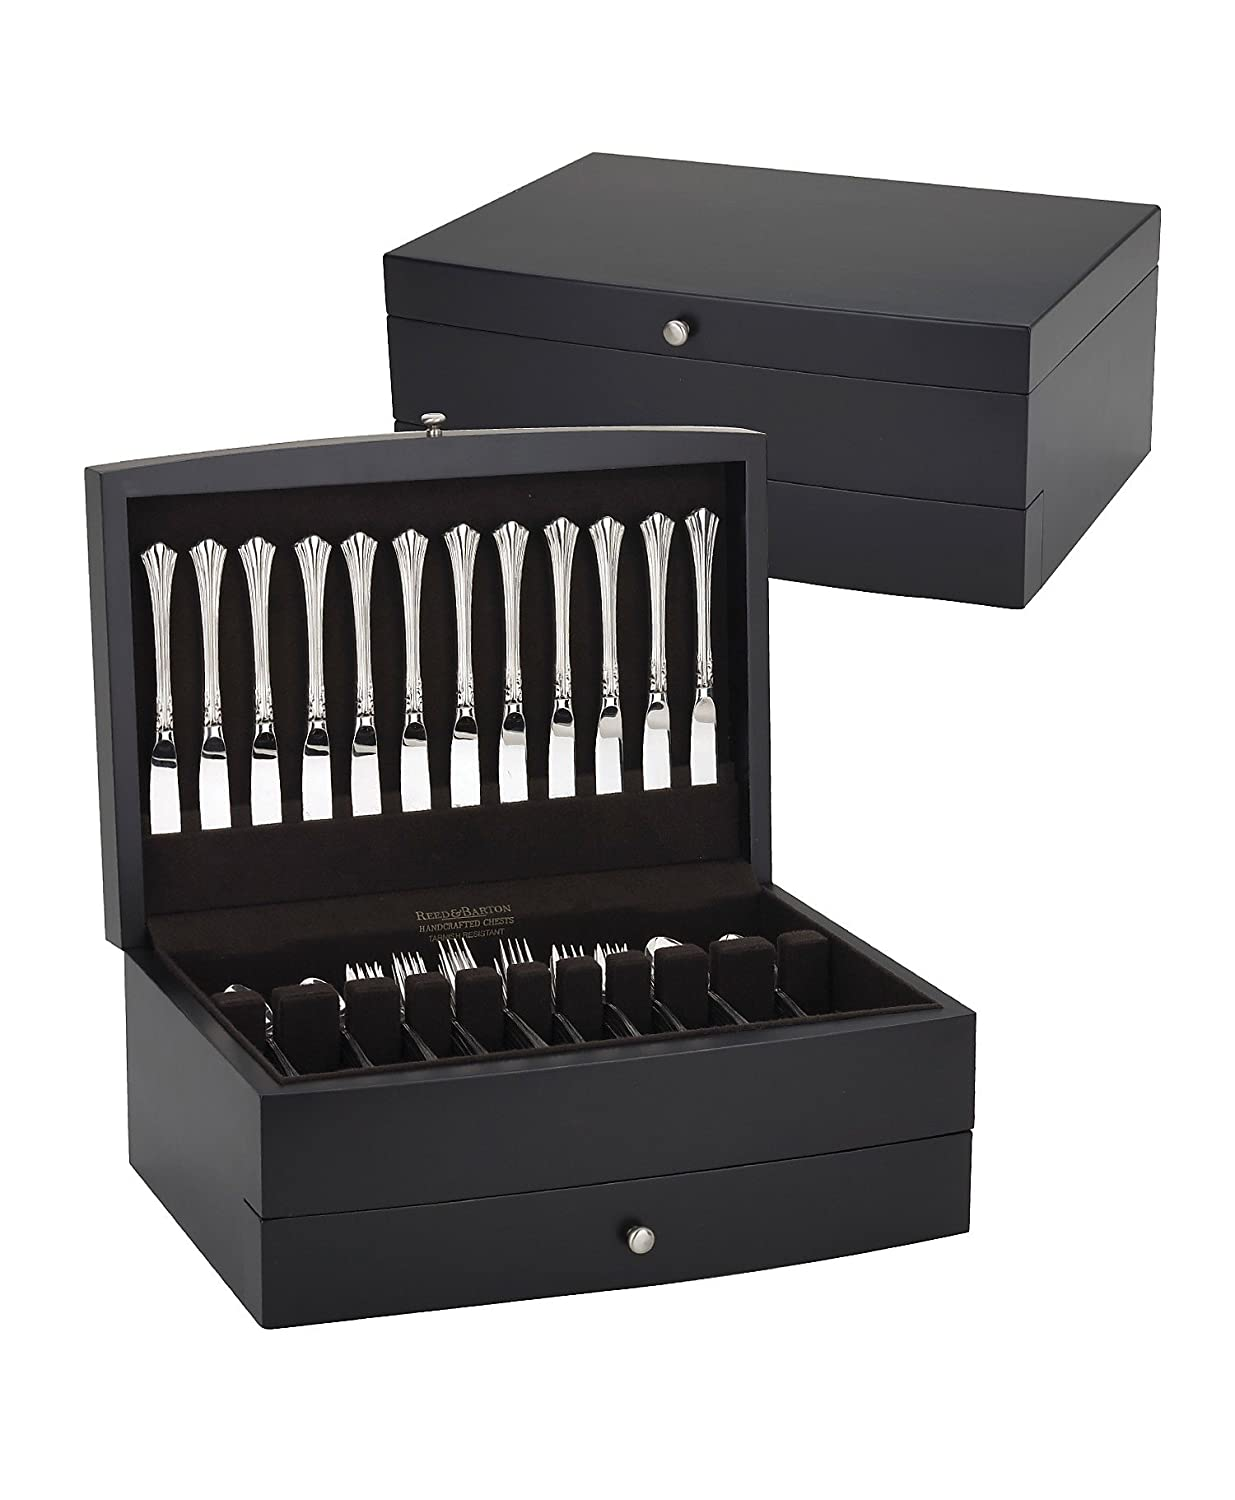 Reed & Barton Falmouth One Drawer Flatware Chest, Dark Espresso with Brown Lining Reed & Barton Flatware 573E